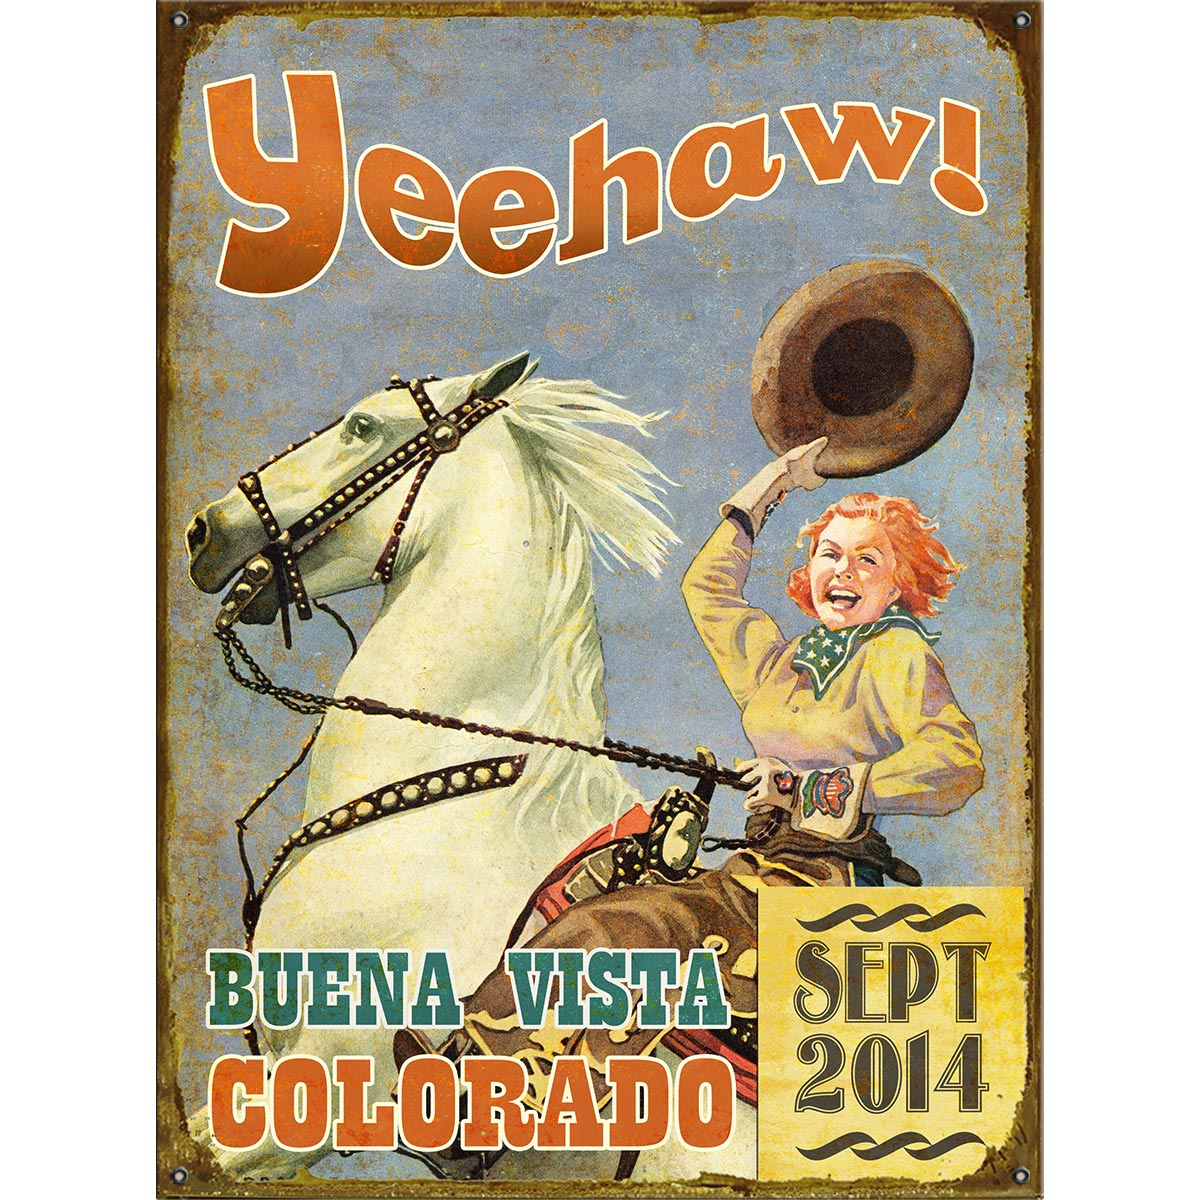 Yeehaw Cowgirl Personalized Sign - 23 x 31